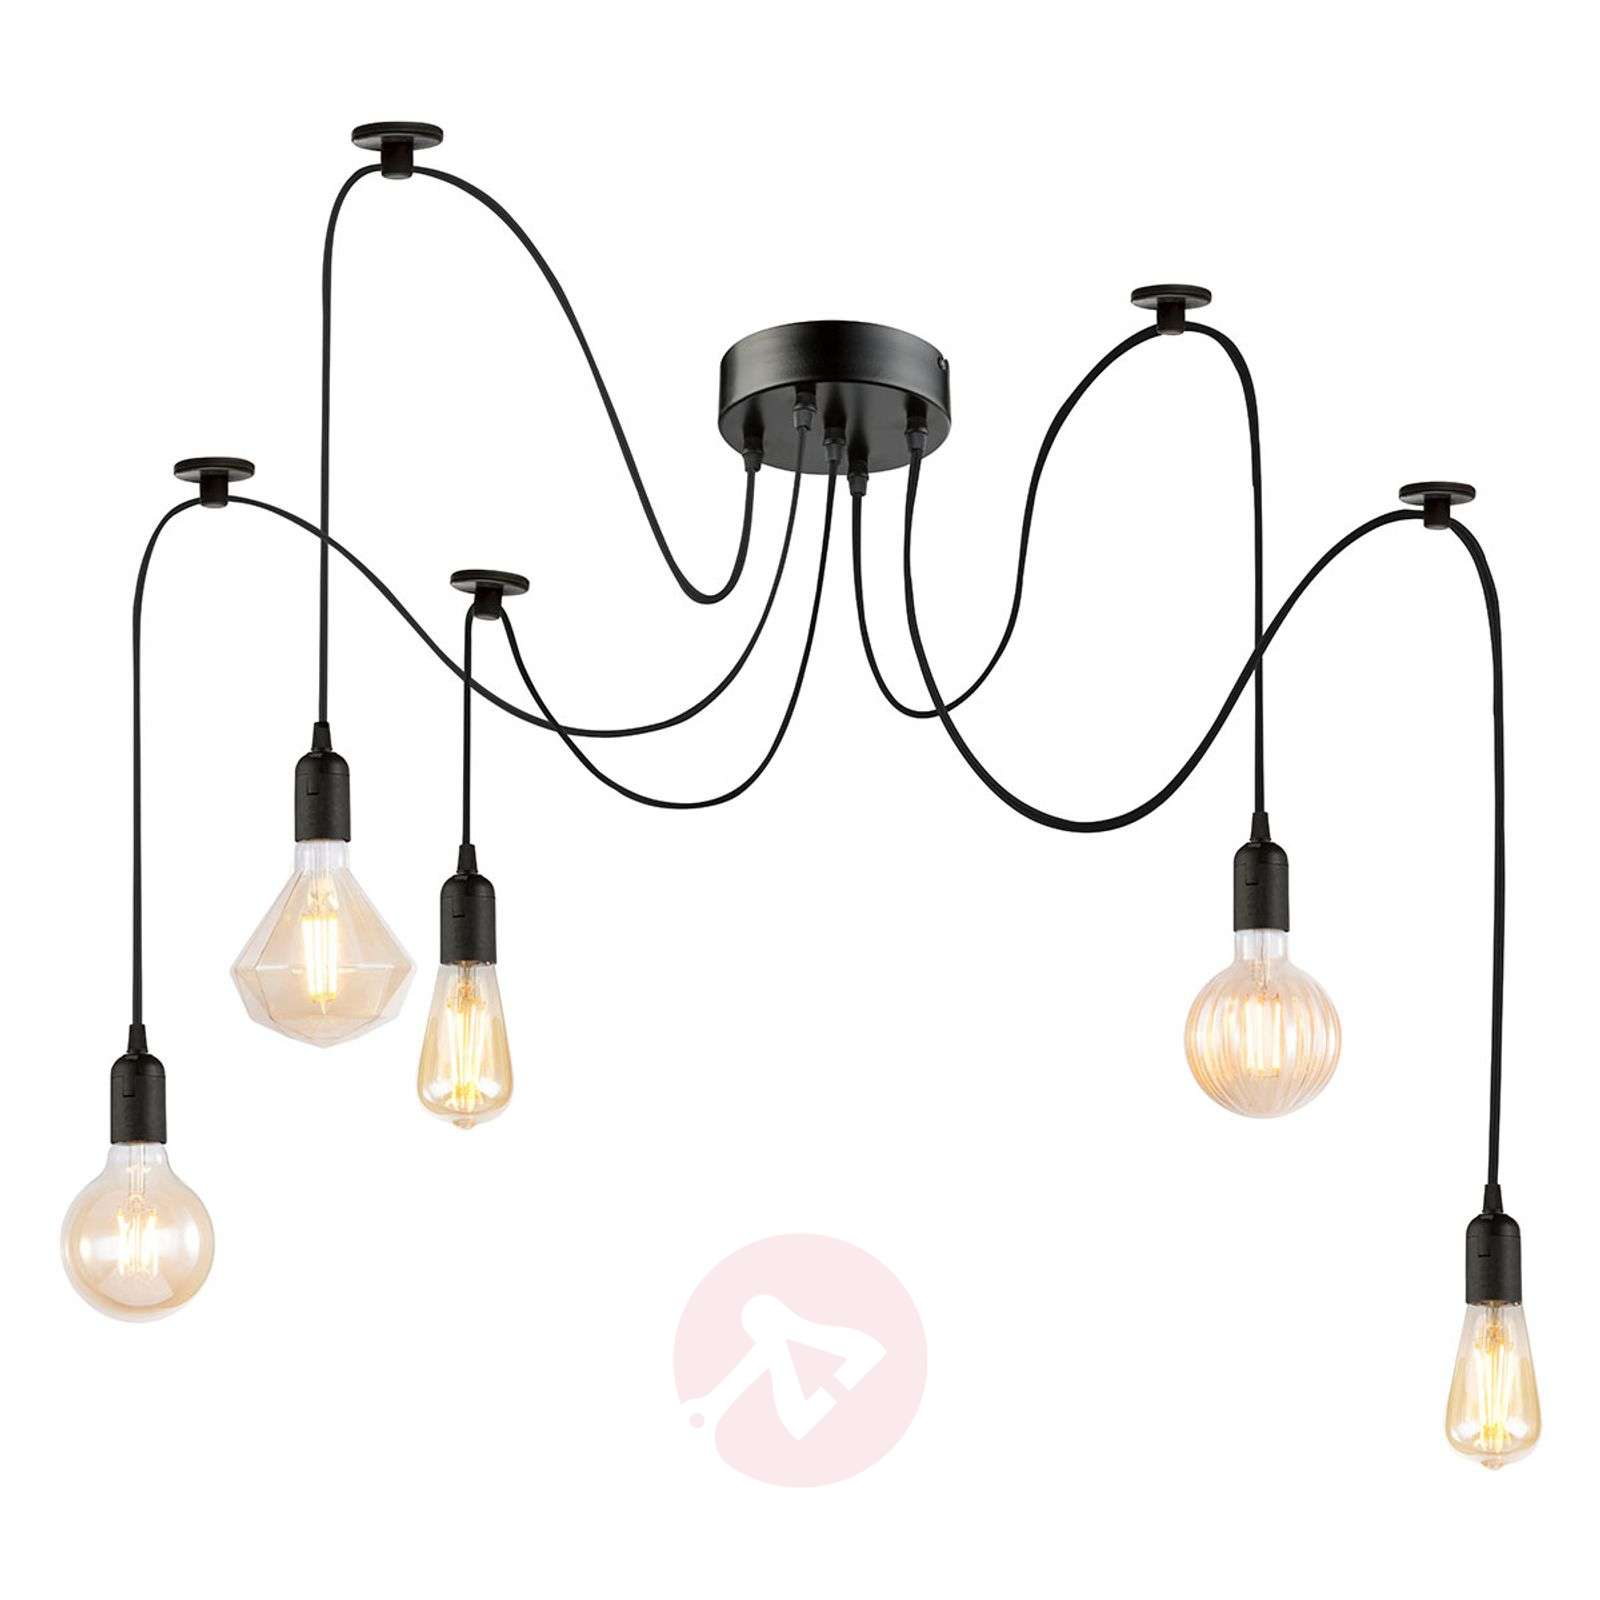 À Ampoules Suspension Led Filament Maxie 34Lqc5ARj